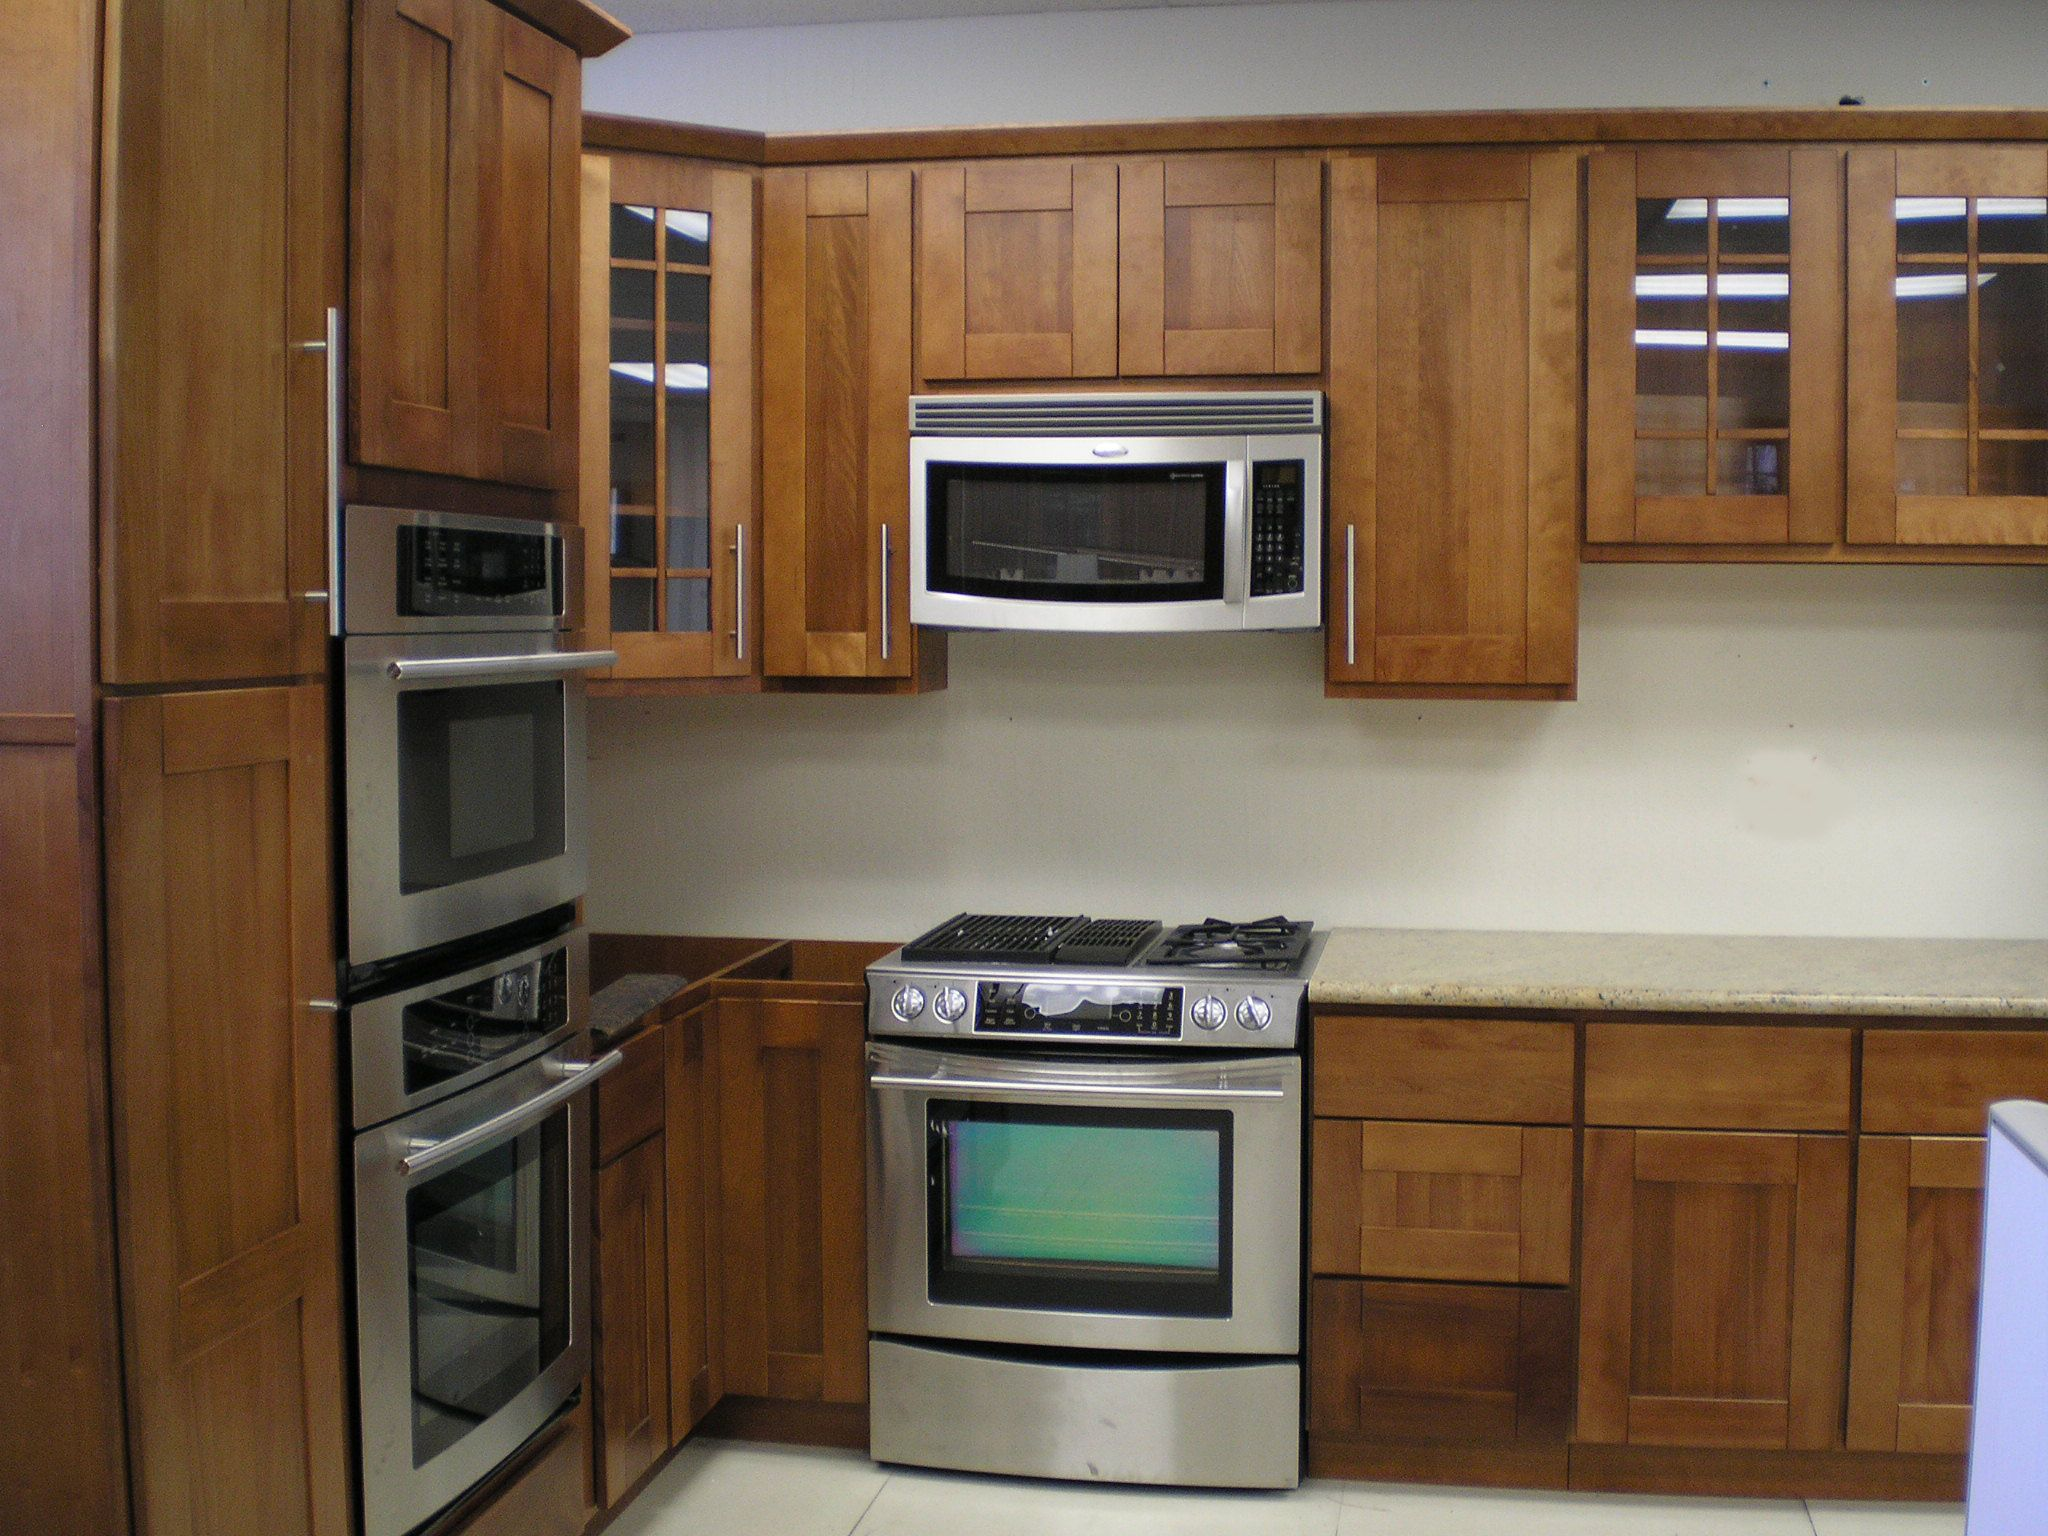 Kitchen cabinets corner oven - Kitchen Cabinets Closeout Kitchen Cabinets On Raised Panel Shaker Style Toffee Finish